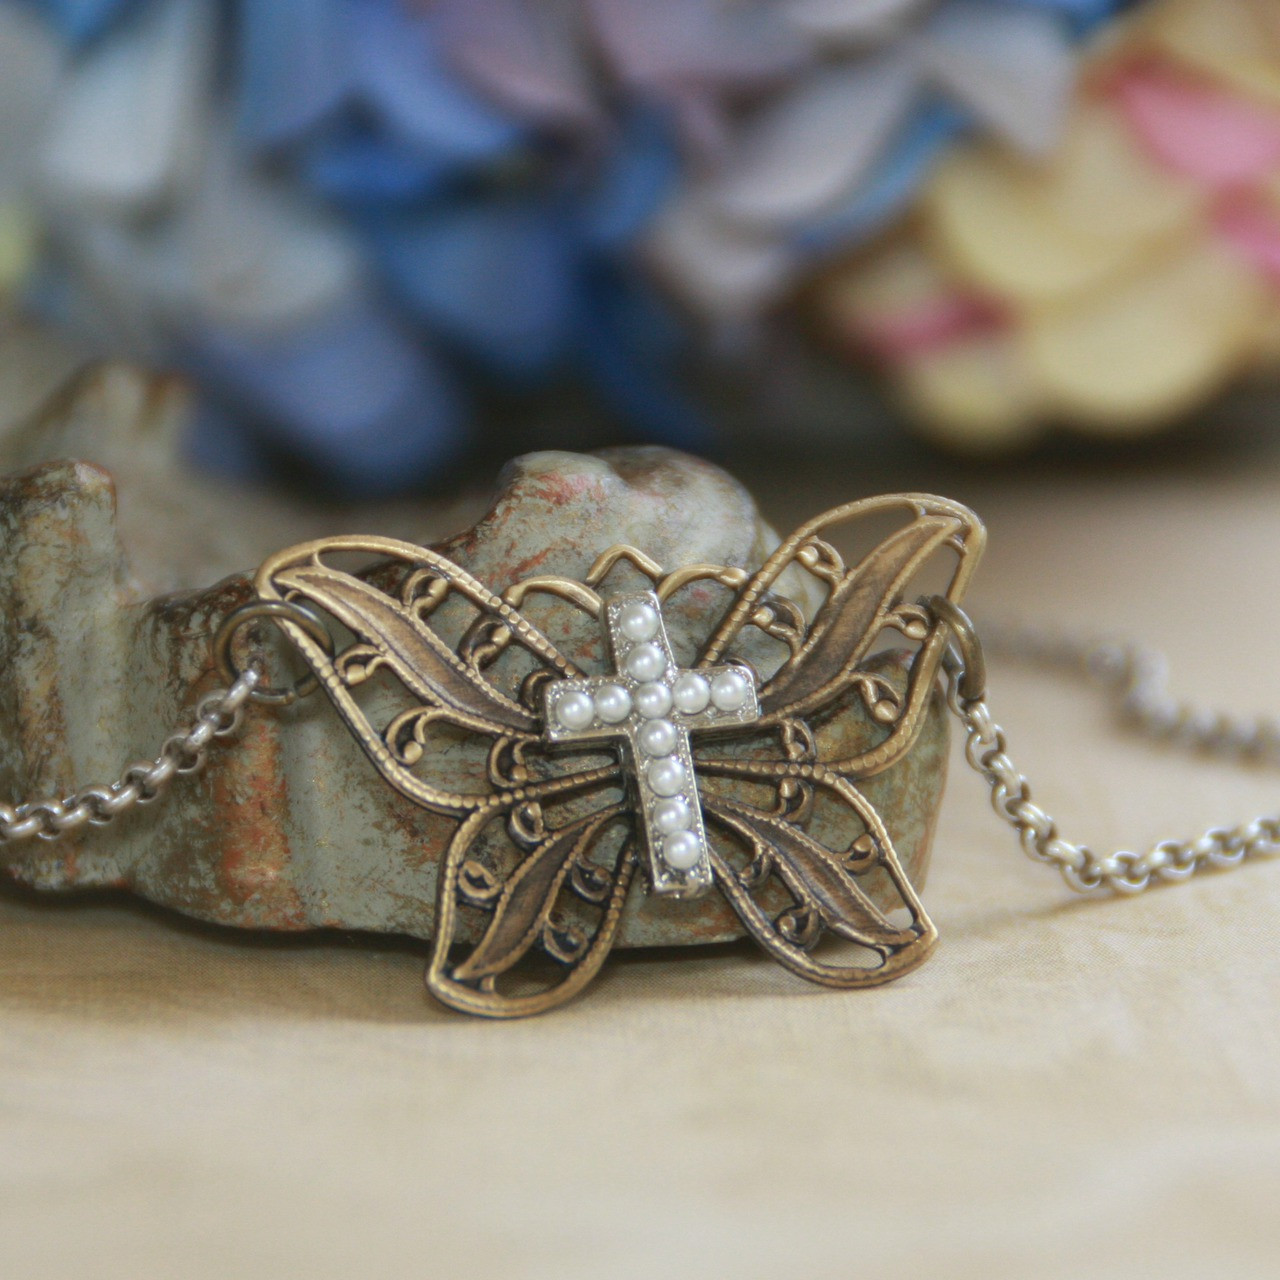 IN-528  Butterfly and Cross Lovely Necklace